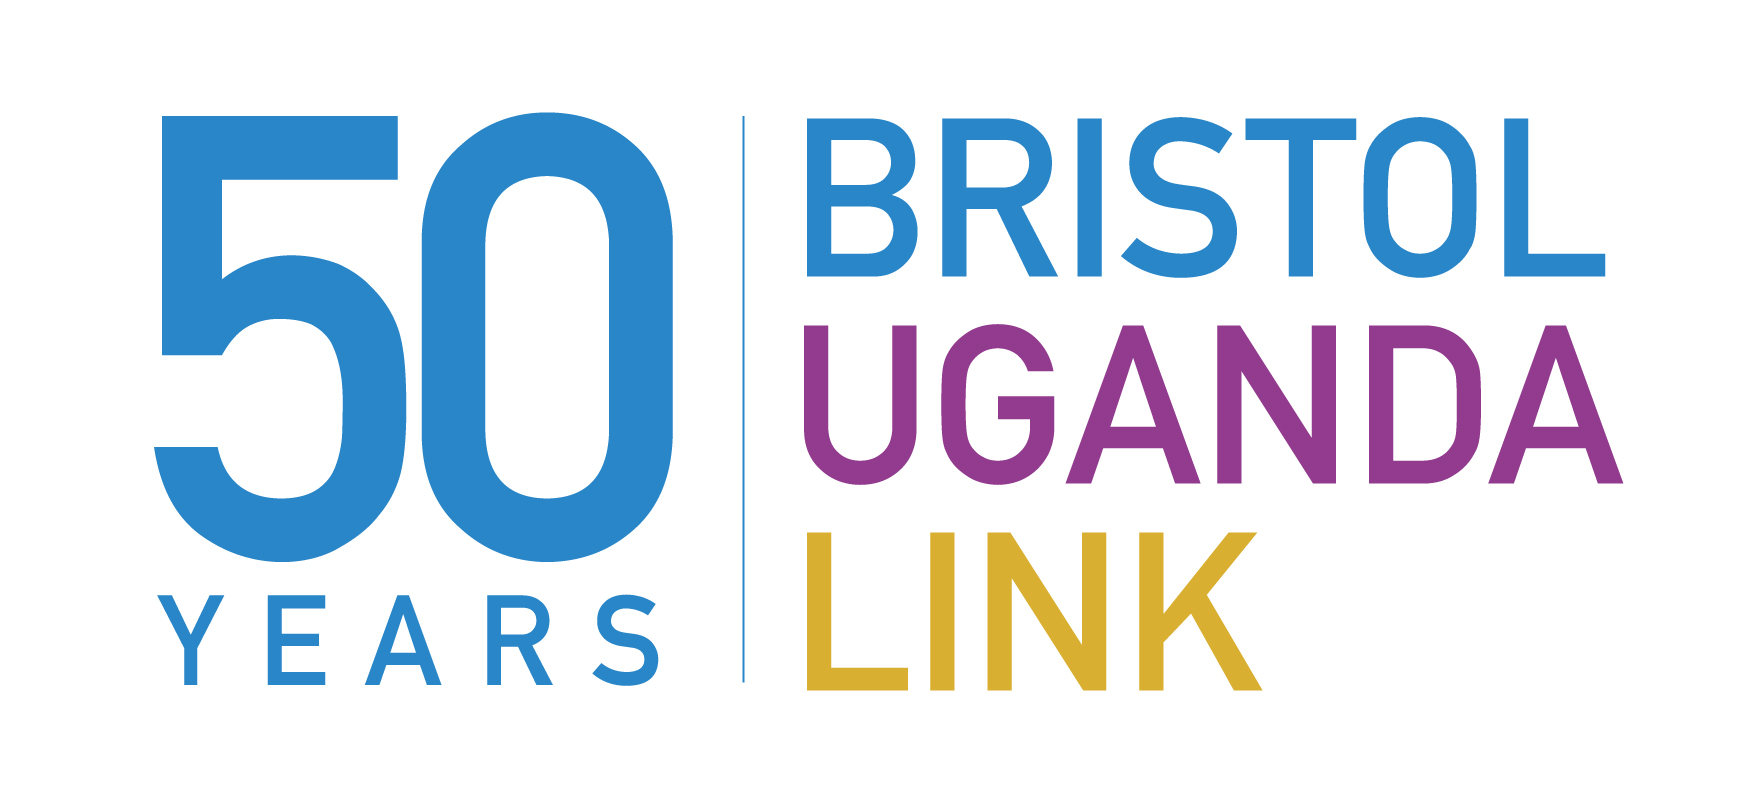 Open Bristol Uganda link marks 50 years of friendship with celebration